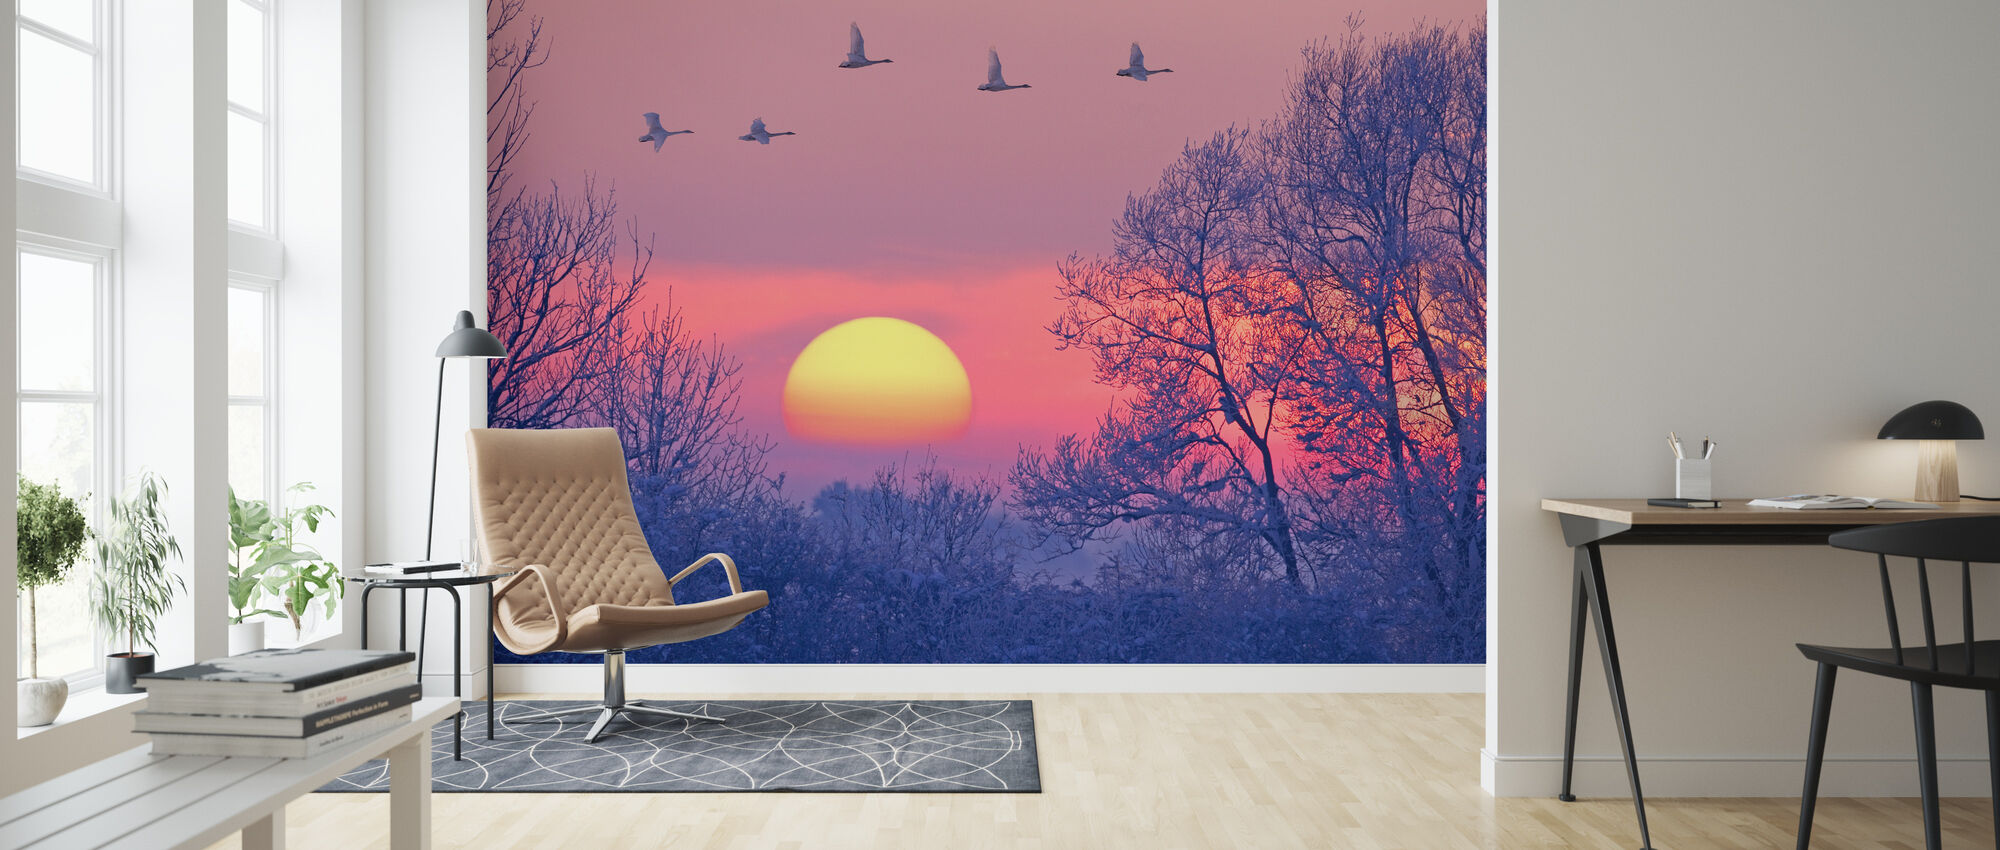 Whooper Swans at Dusk - Wallpaper - Living Room